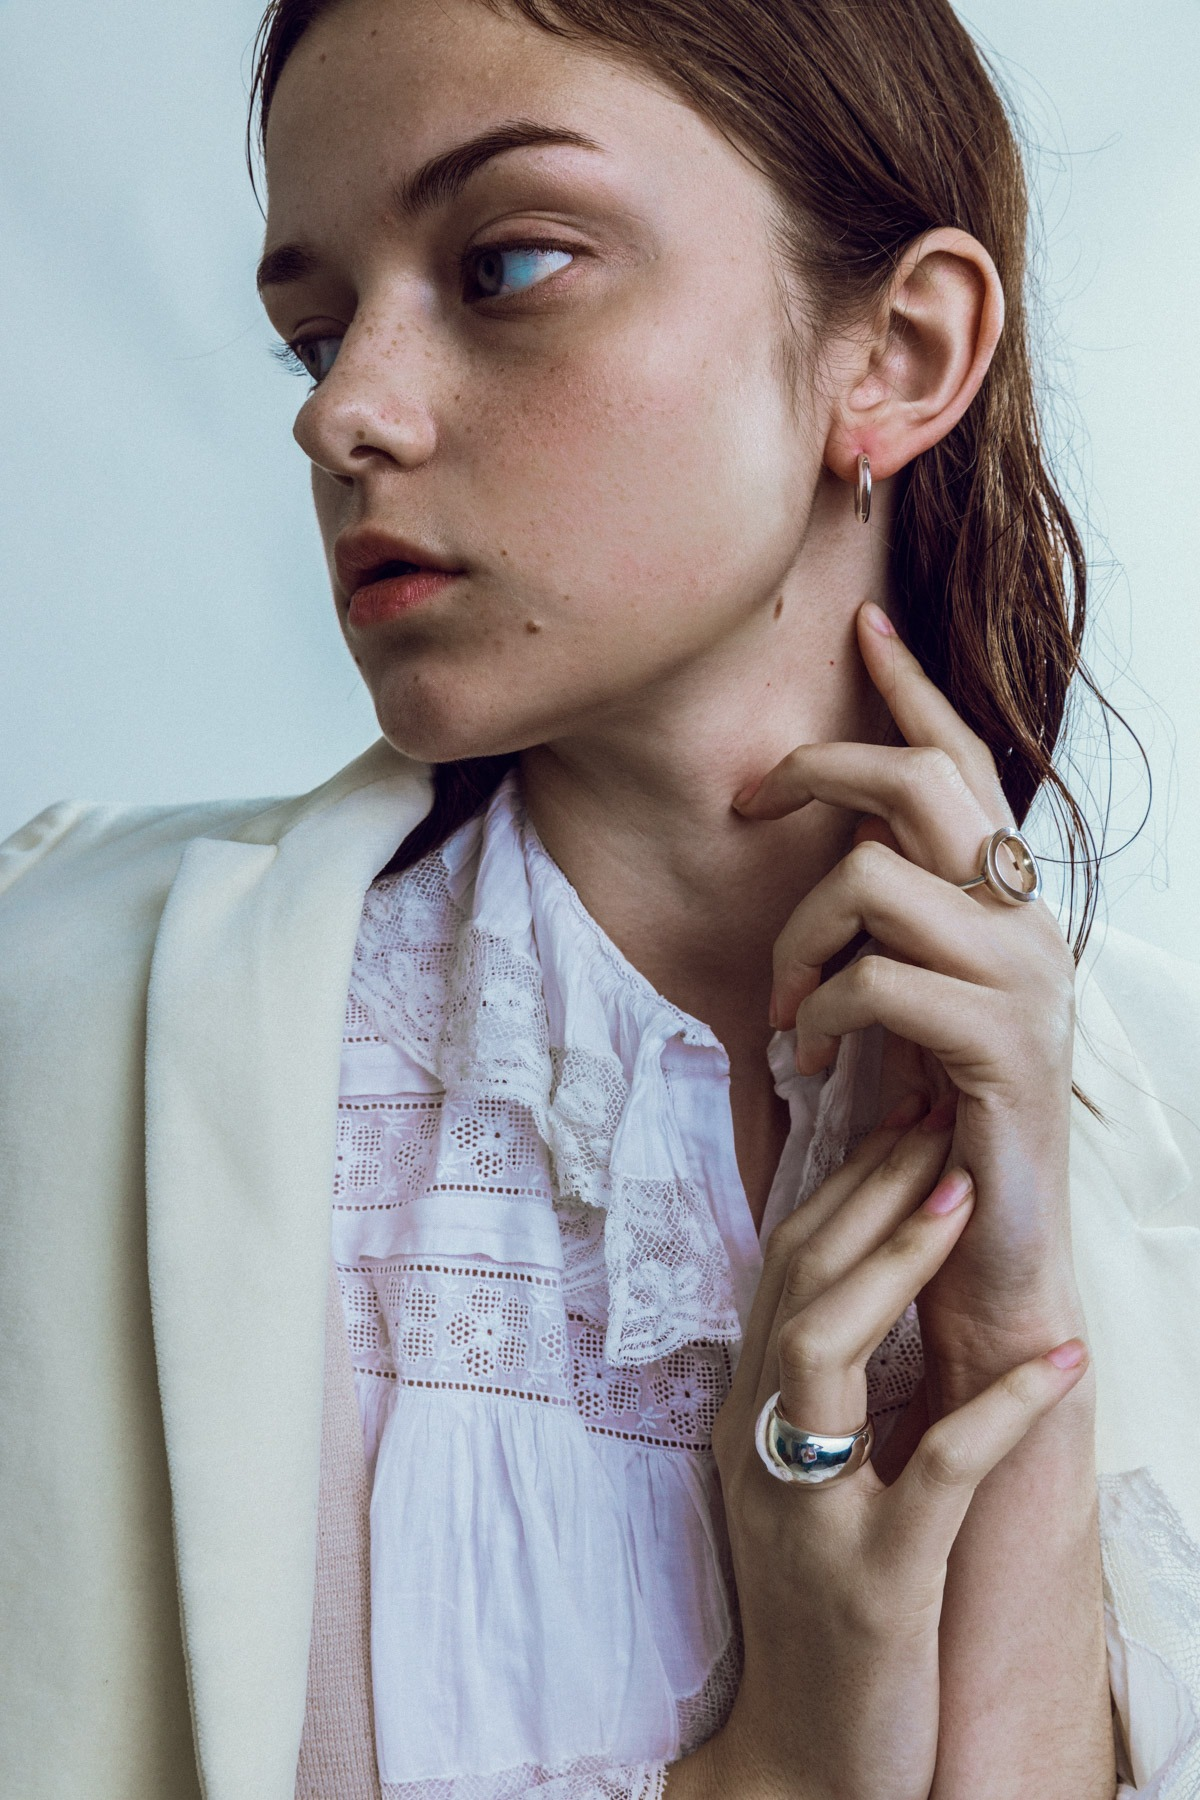 anmoda models tokyo model wearing vintage eyelet blouse and white blazer with dlaw jewelry in tokyo studio by ivana micic